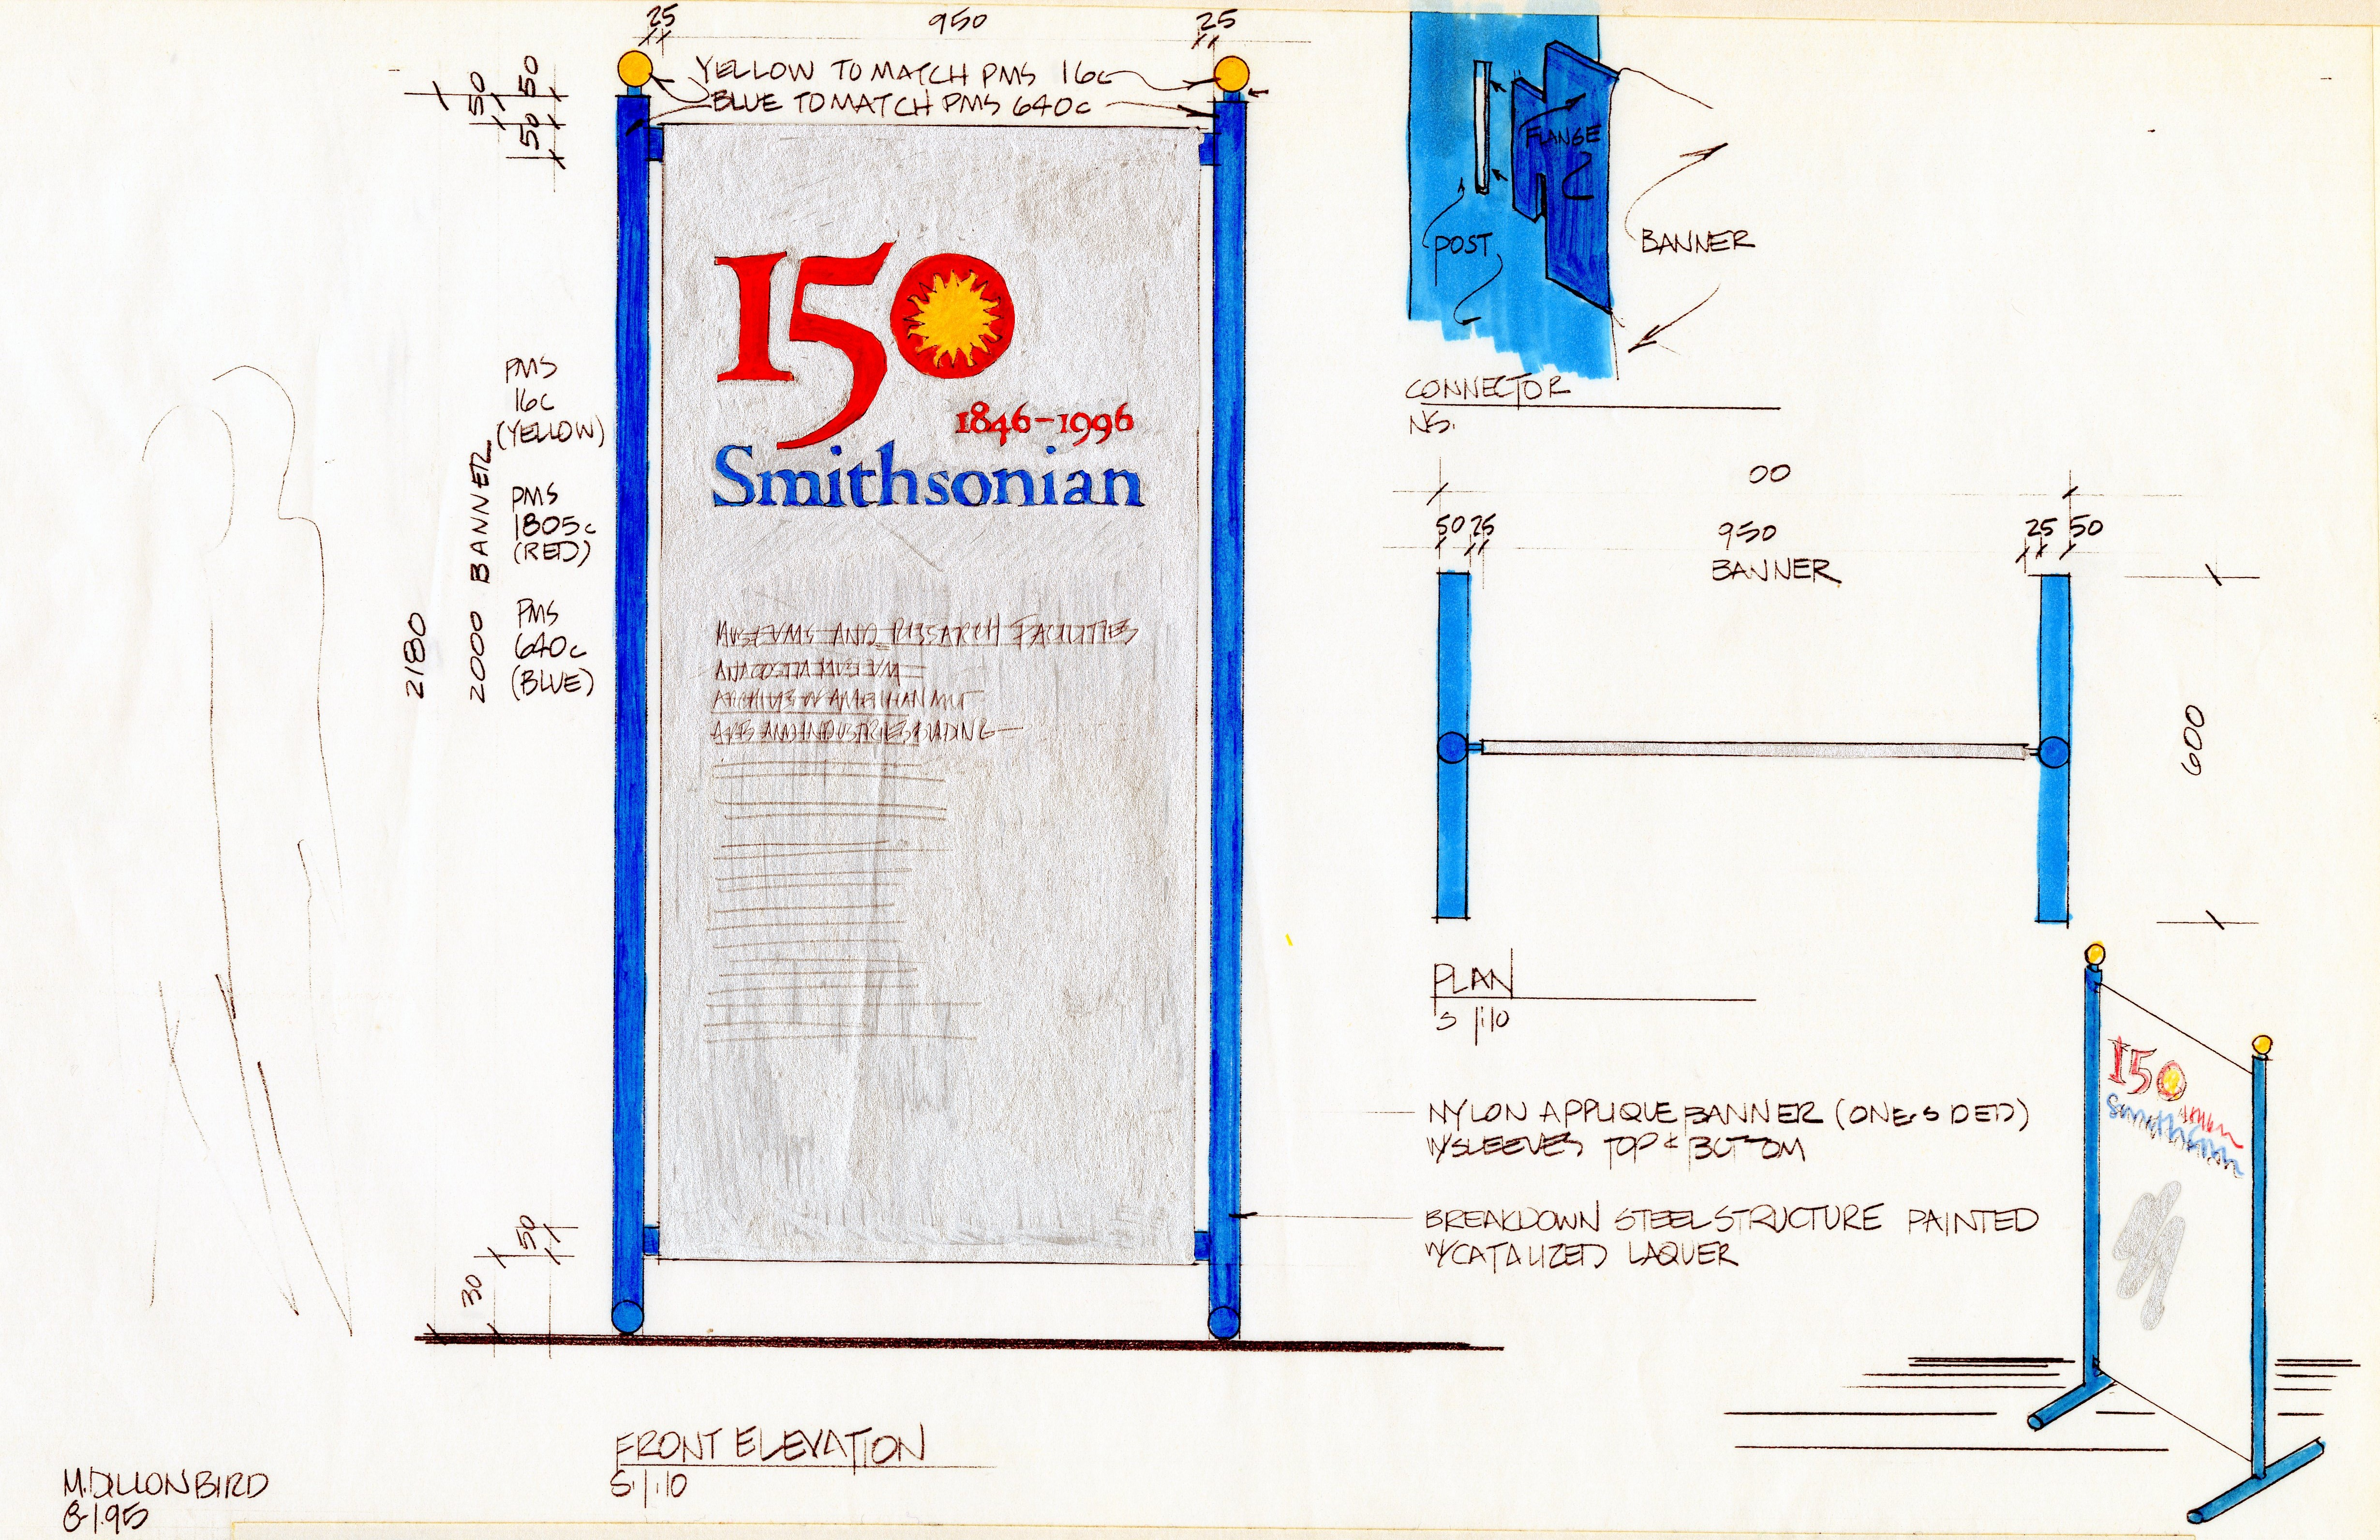 Elevation drawing - 150th Anniversary banner, by Mary Dillon Bird, Office of Exhibits Central, 1995,